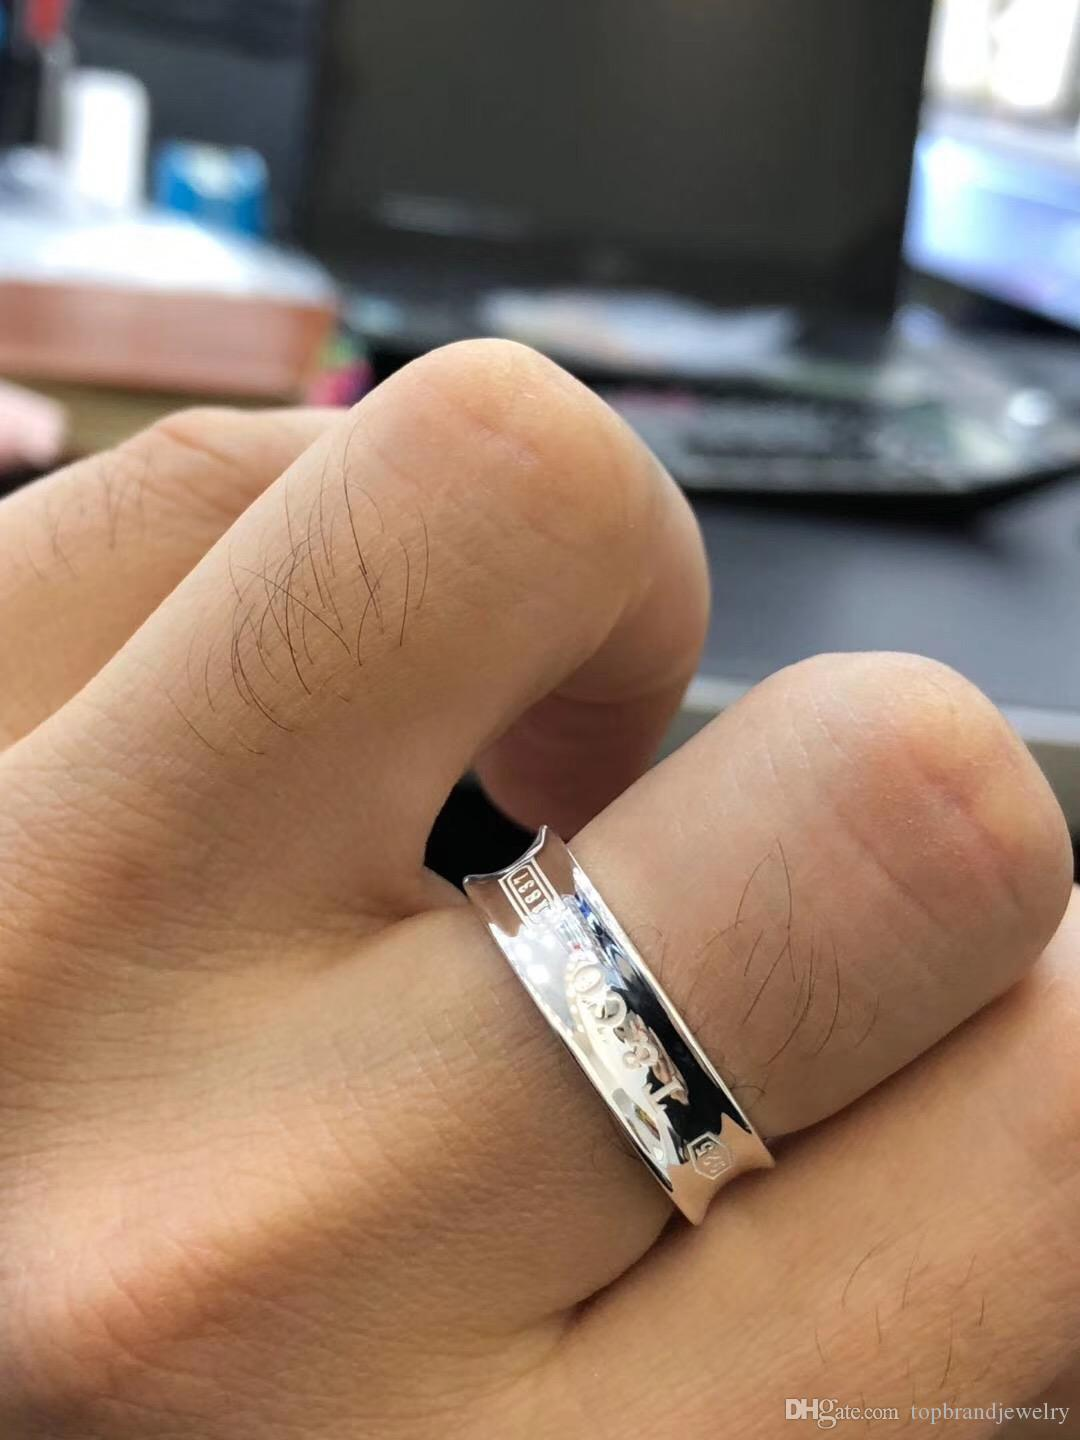 8d477b610f6 Ag925 Pure Silver 1837 Ring Sign Charm Band Ring with Logo for Women And  Man Fashion Jewelry Gift Drop Shipping PS7627 Ag925 Pure Silver 1837 Ring  Sign ...